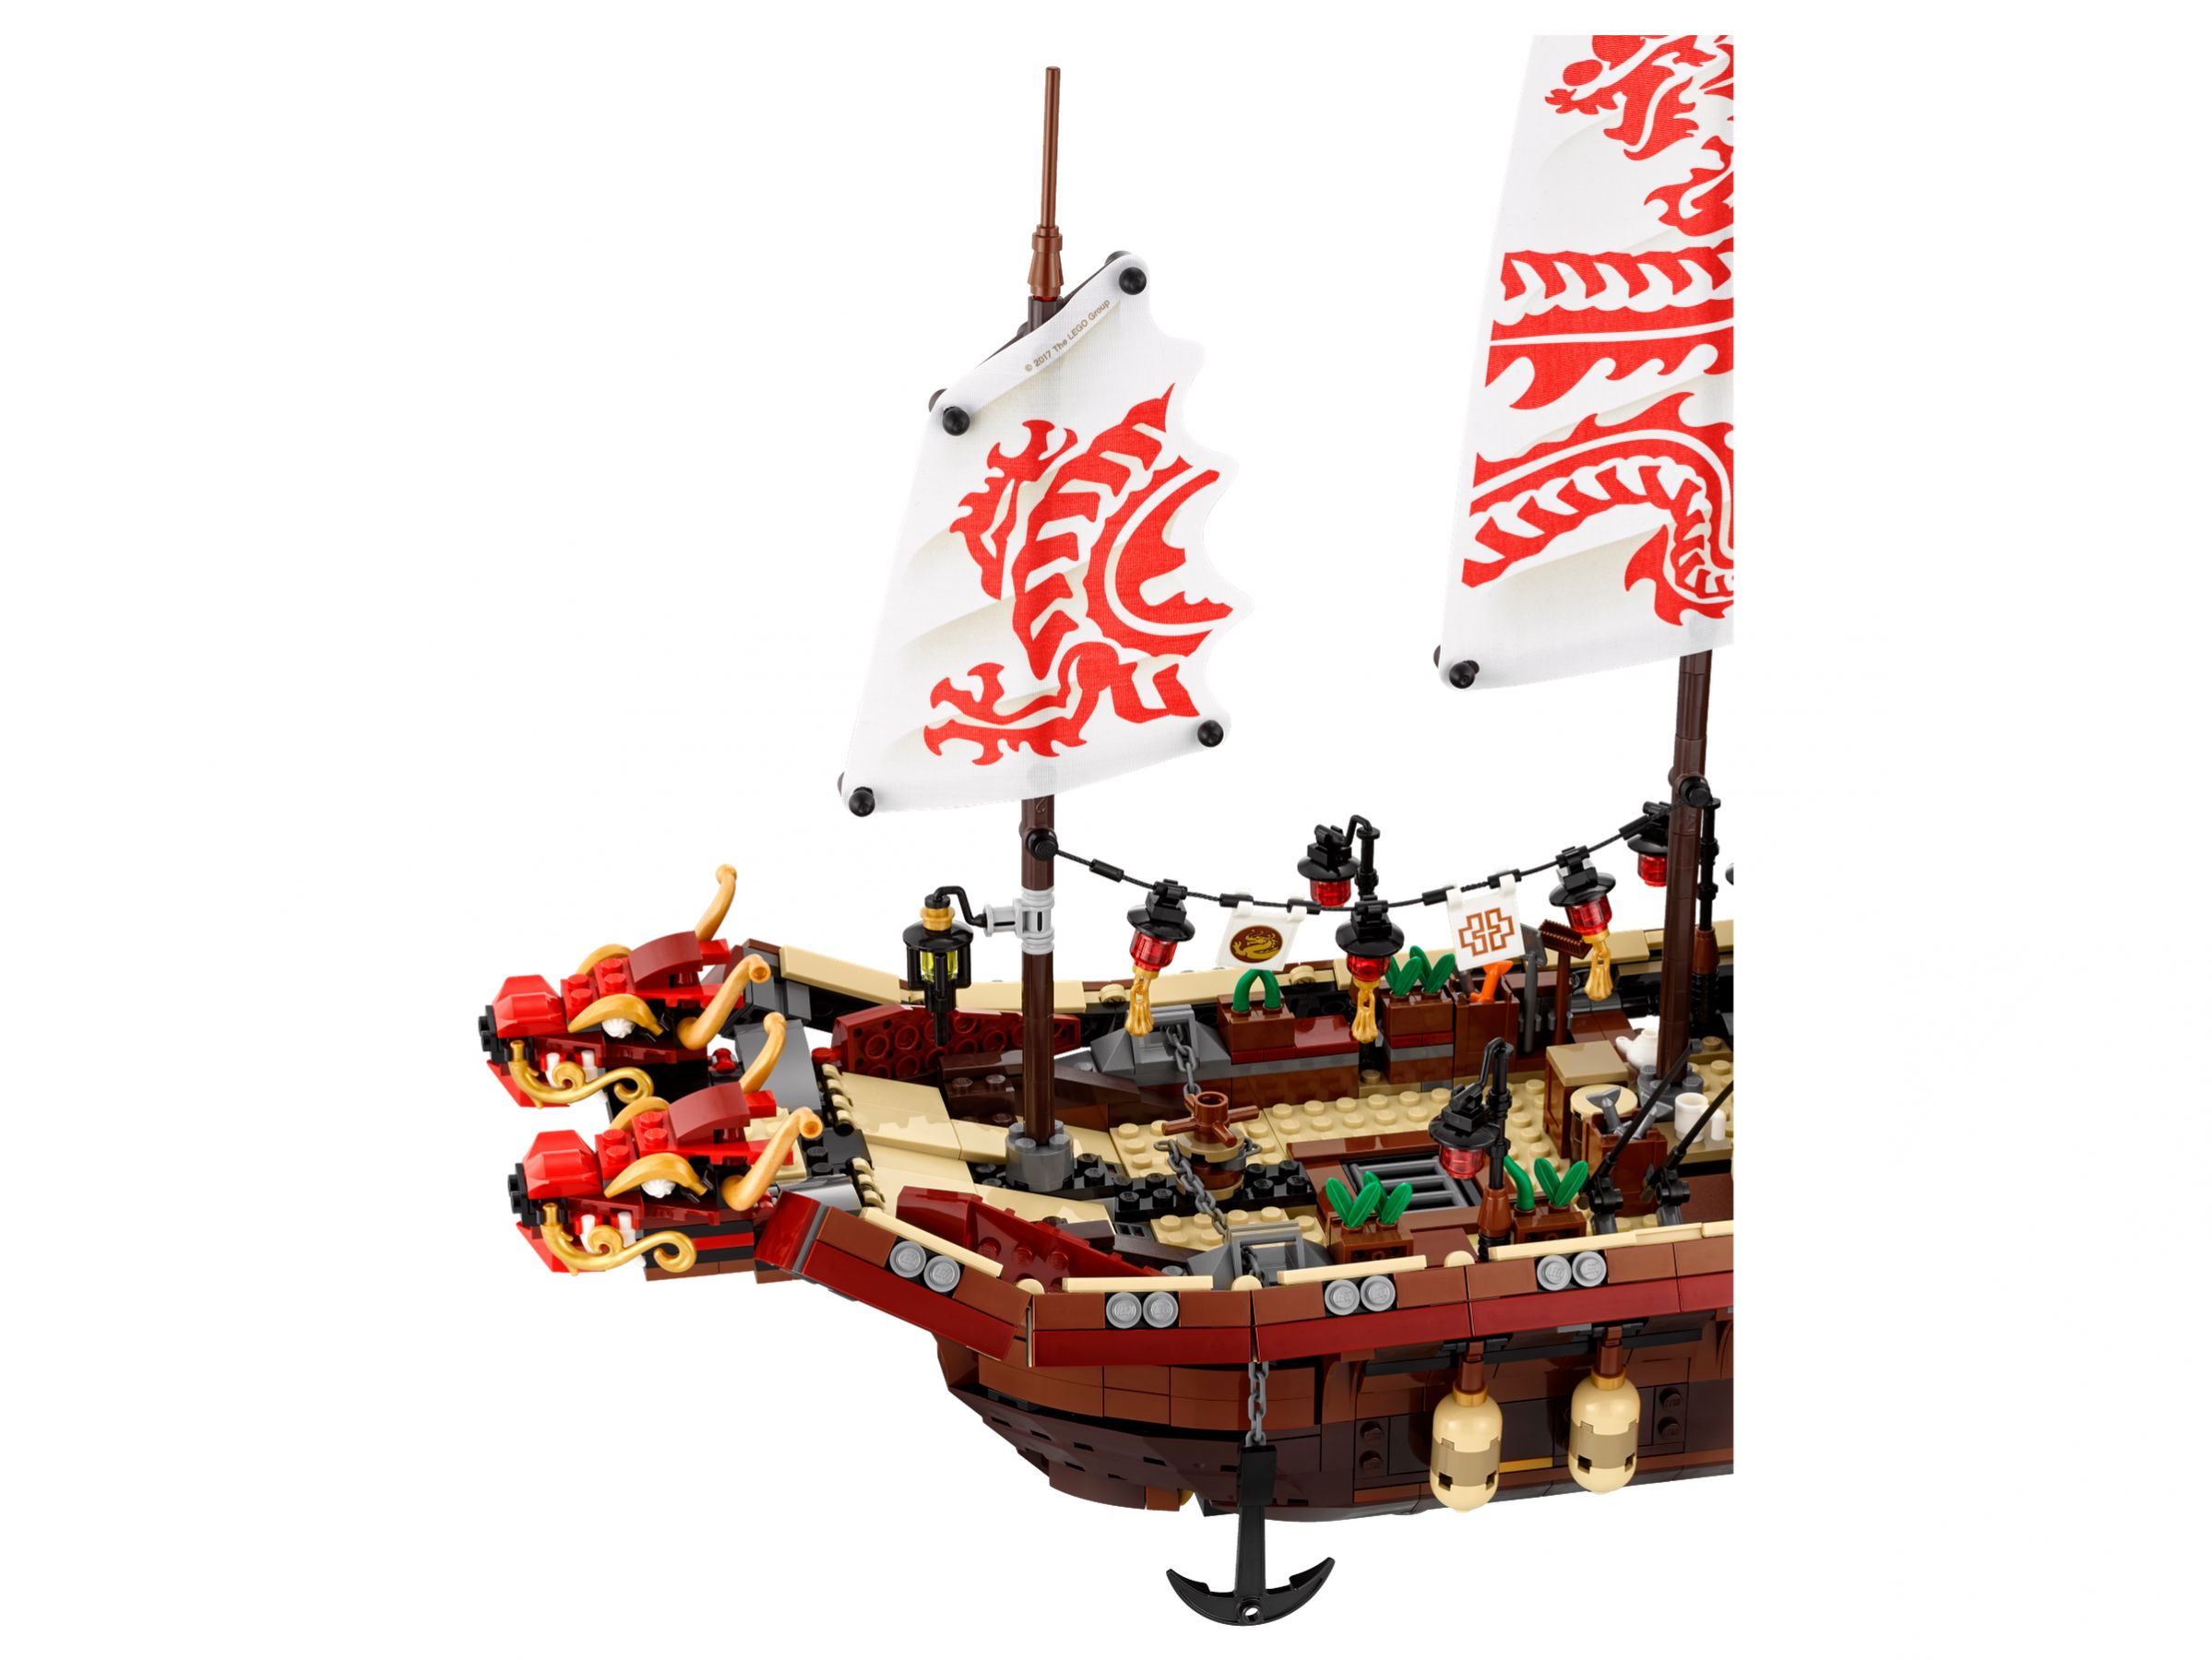 LEGO The LEGO Ninjago Movie 70618 Ninja-Flugsegler LEGO_70618_alt8.jpg